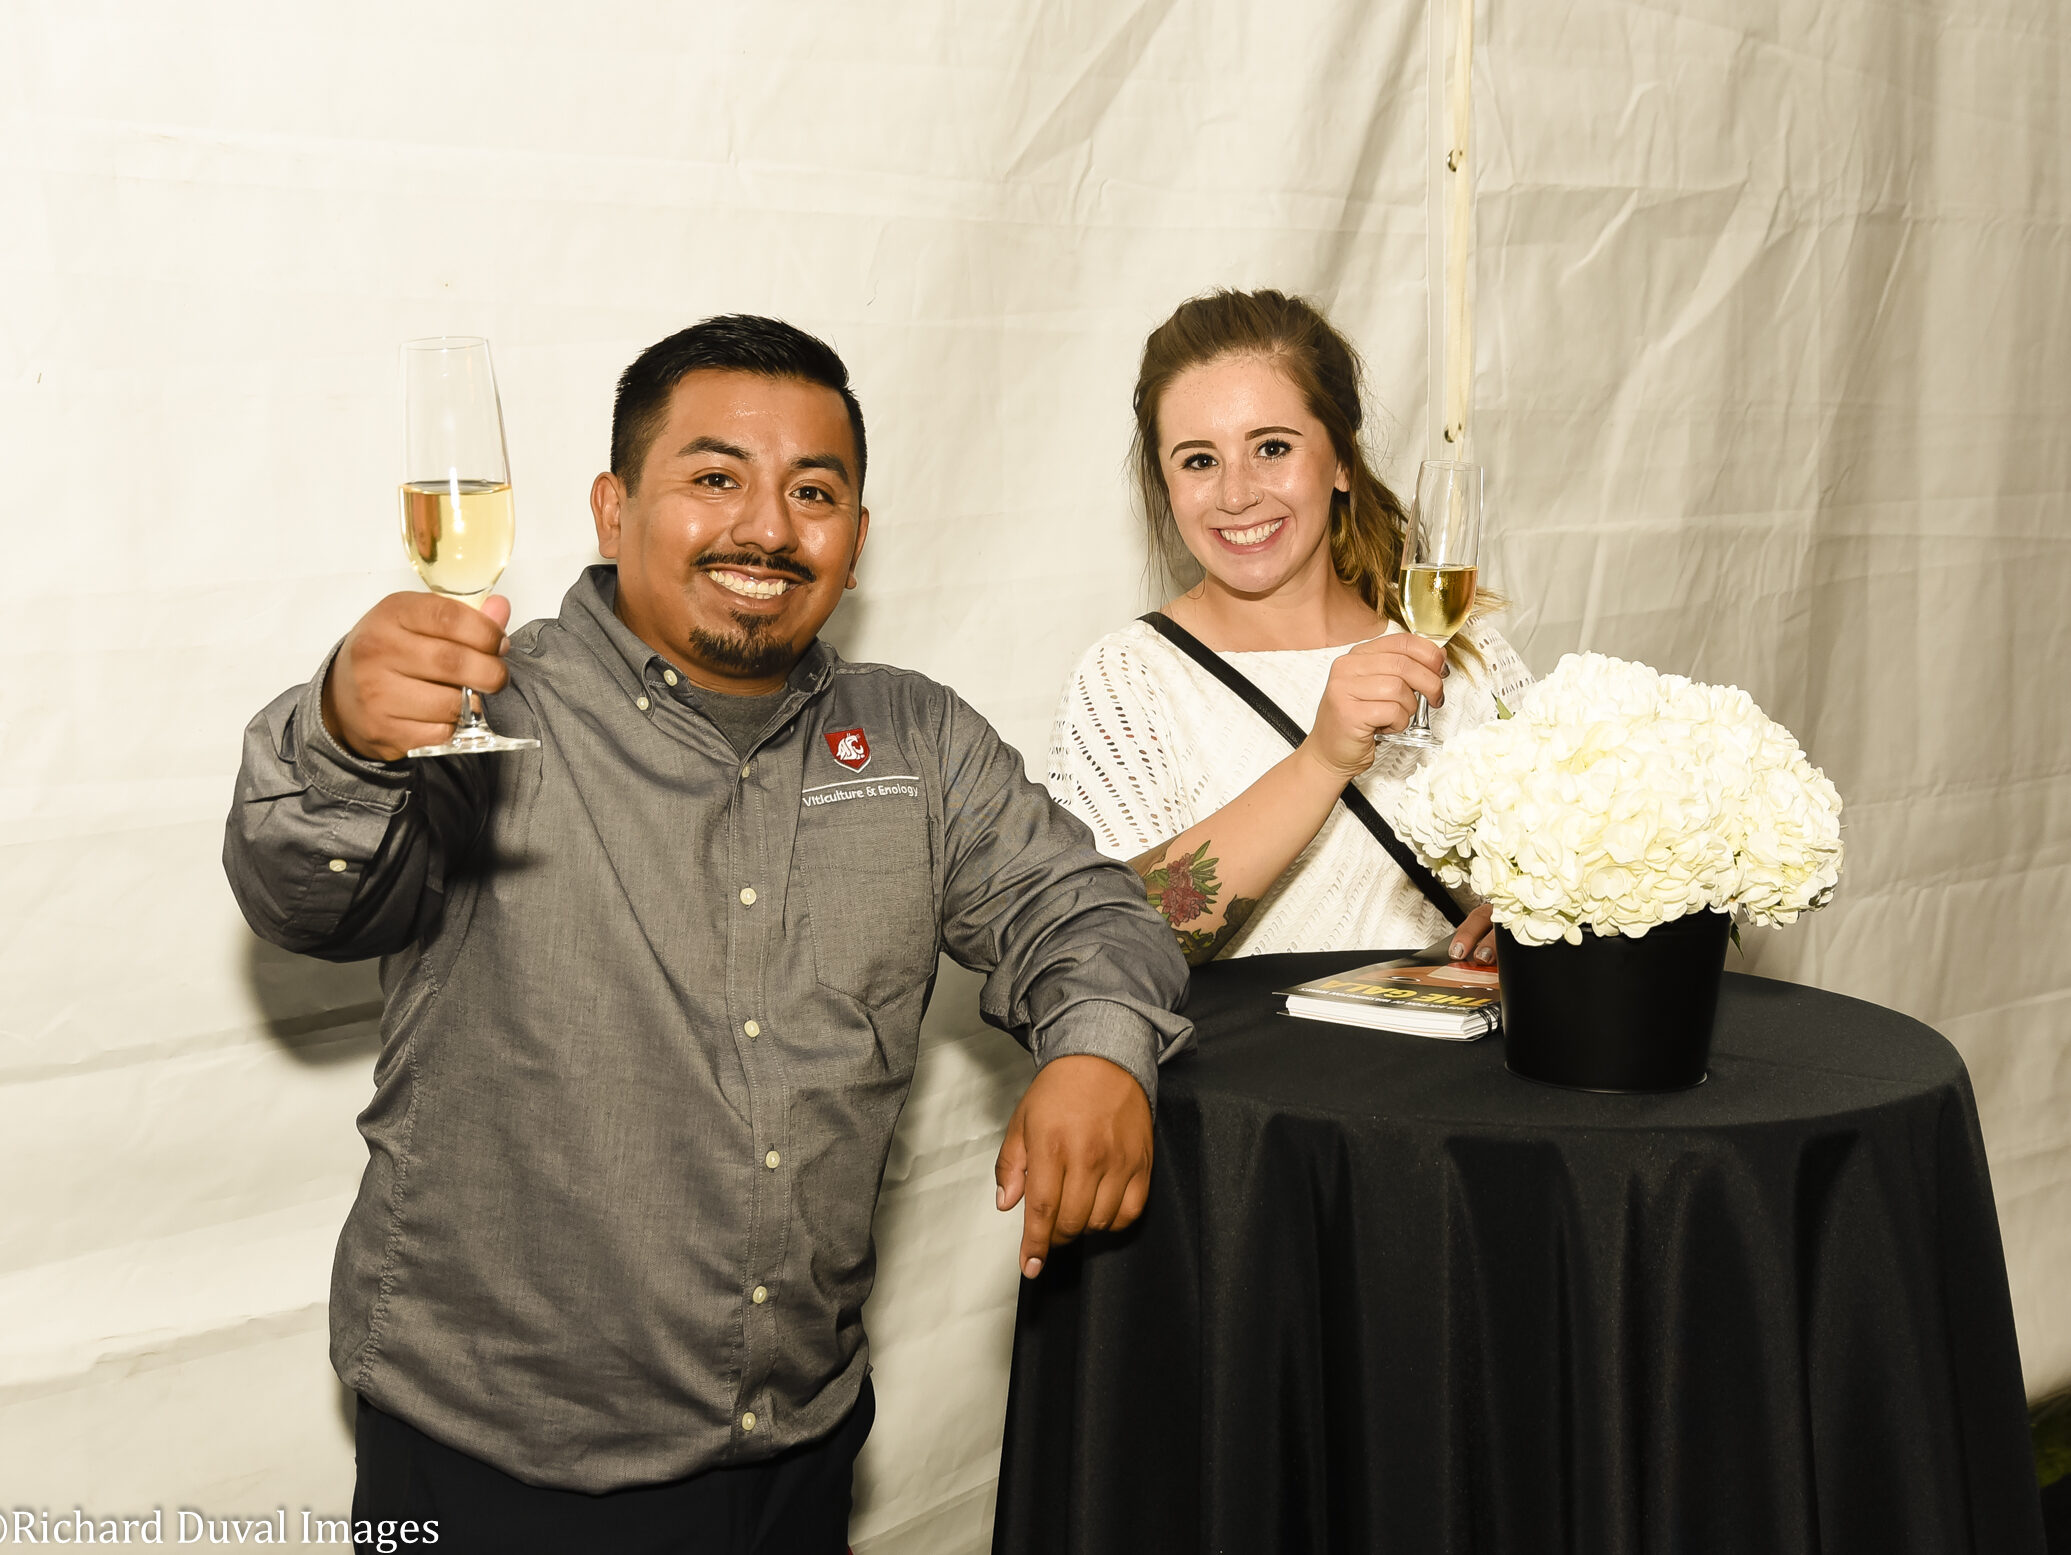 A man and a woman standing at a high table with a black table cloth and white flowers hold a glass of white wine up and smile.